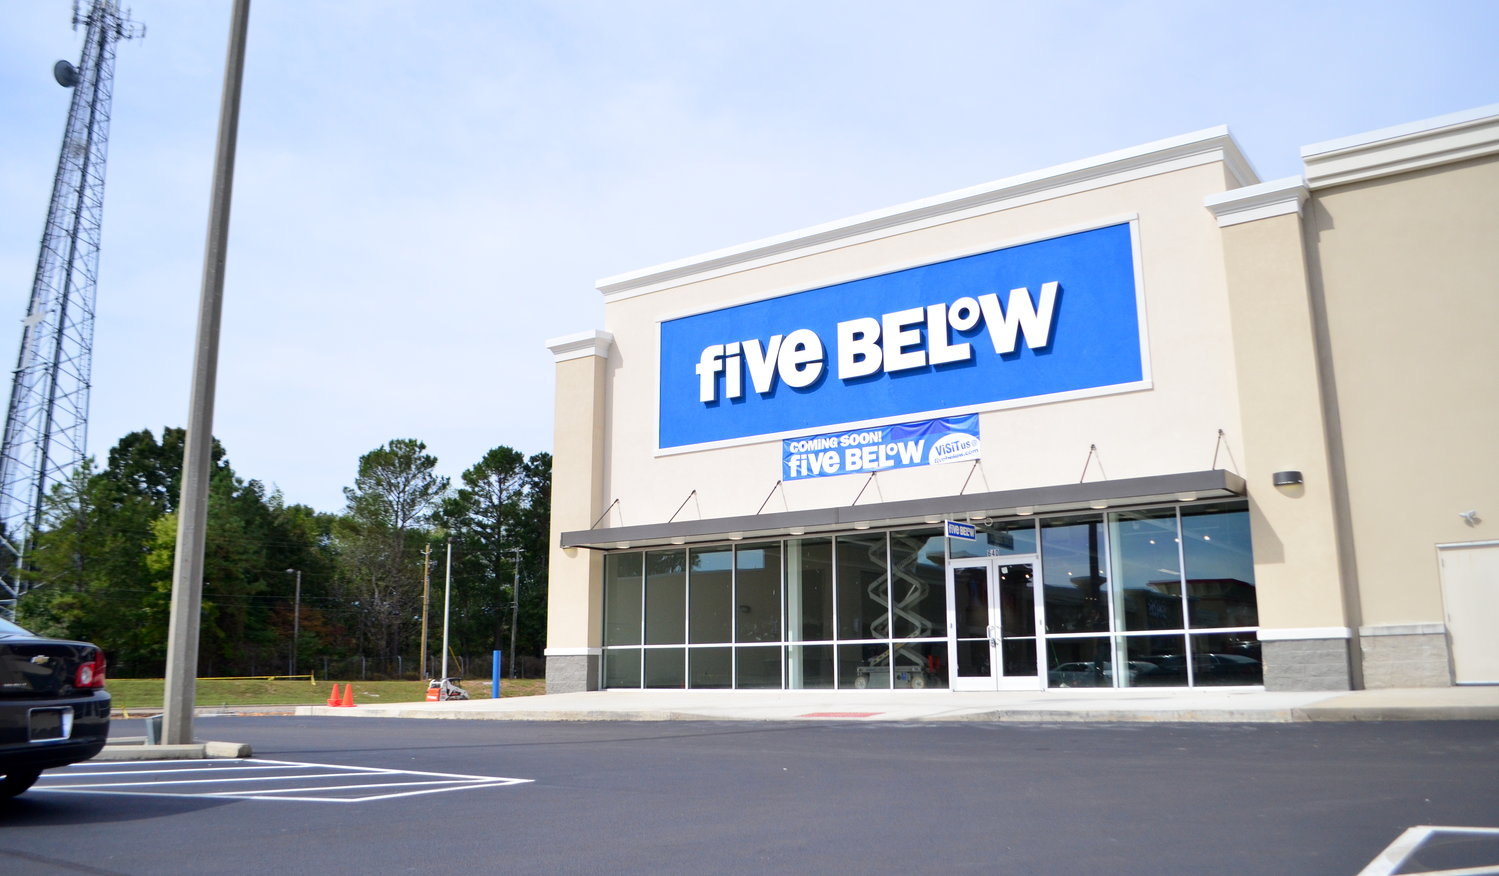 A public relations representative with Five Below has confirmed via email to the Daily Mountain Eagle that Jasper's Five Below will have a 2020 opening. An official opening date has not been set. While the store itself has been constructed in the Jasper Square Shopping Center, work continues on the inside of the building. A new parking lot is also in the works next to the business. Five Below is one of few growing retail chains across the country and sells a variety of items — all for under $5.